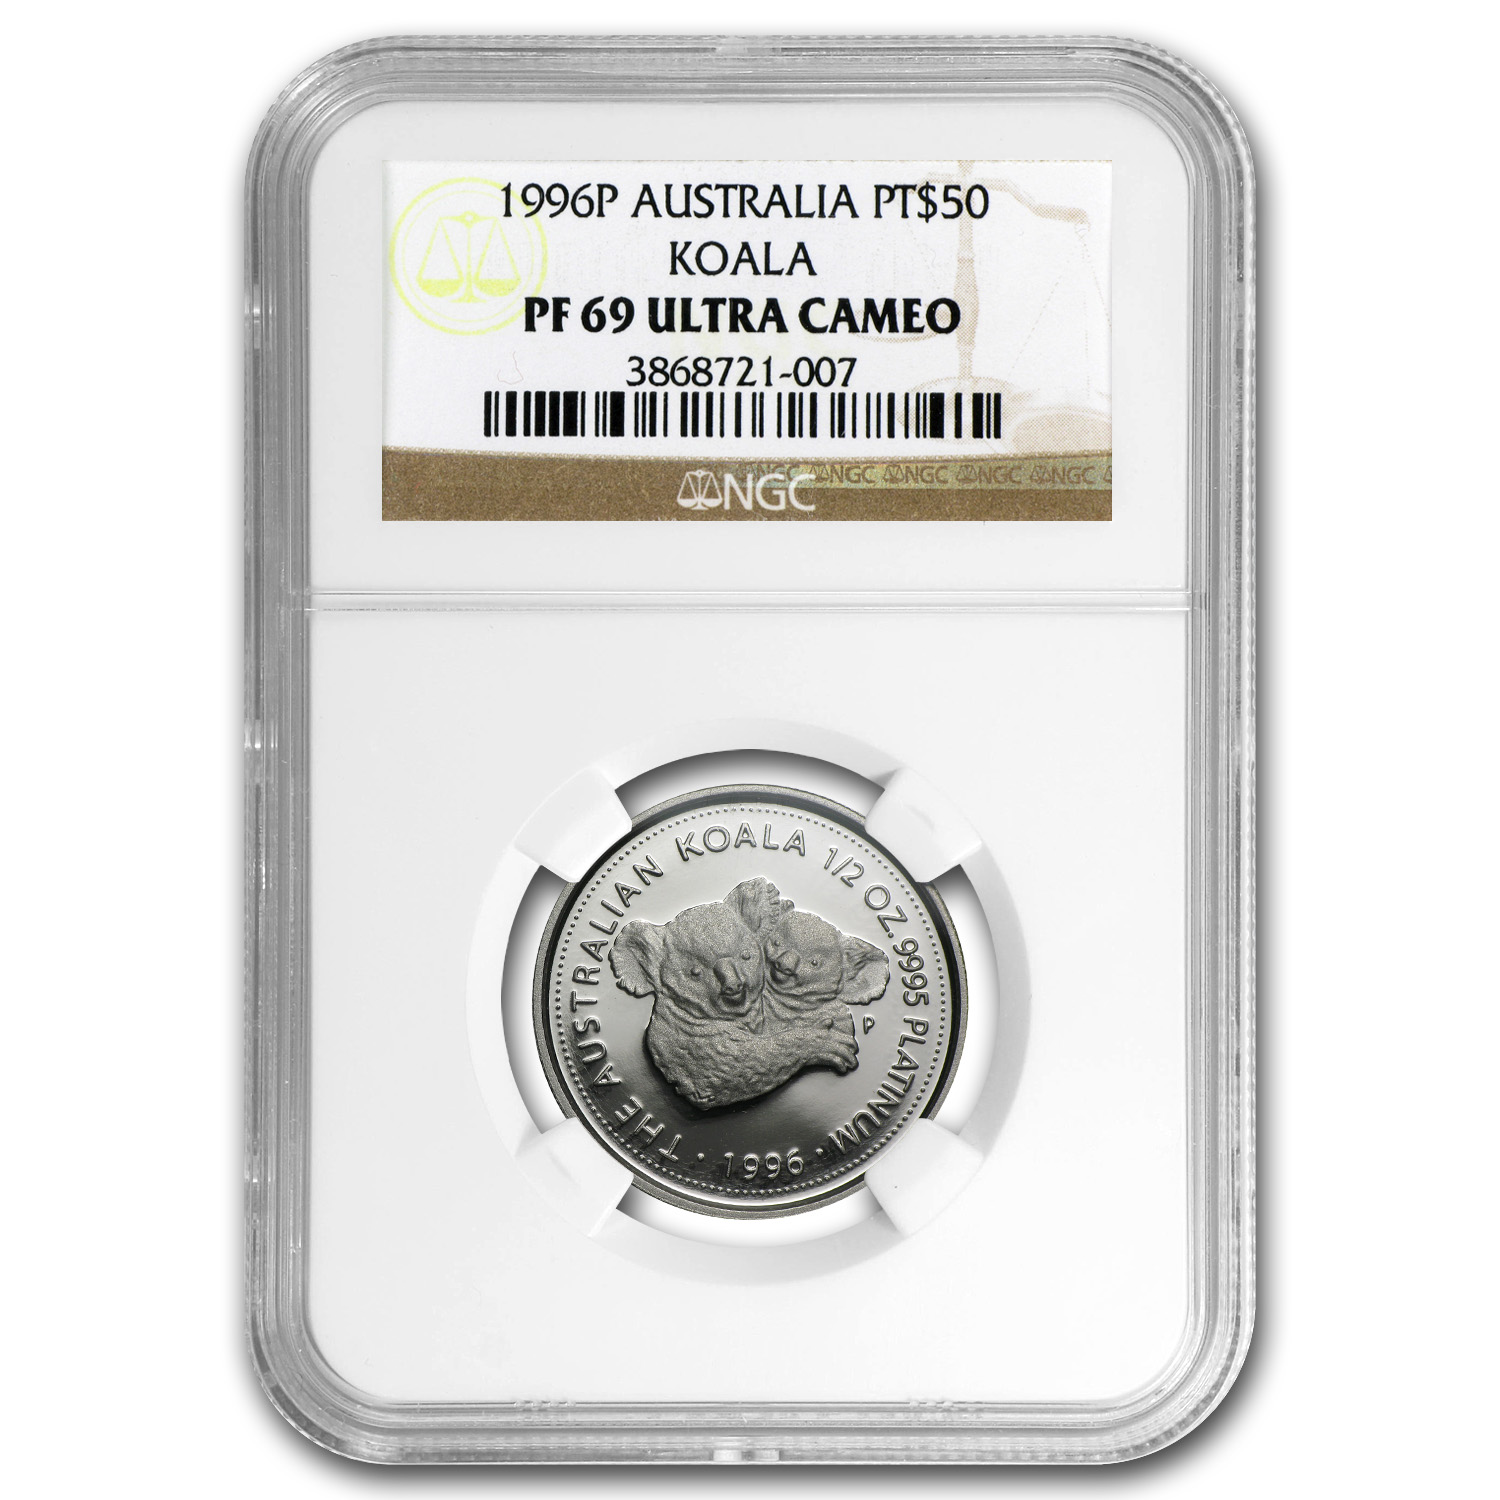 1996 Australia 1/2 oz Proof Platinum Koala PF-69 NGC